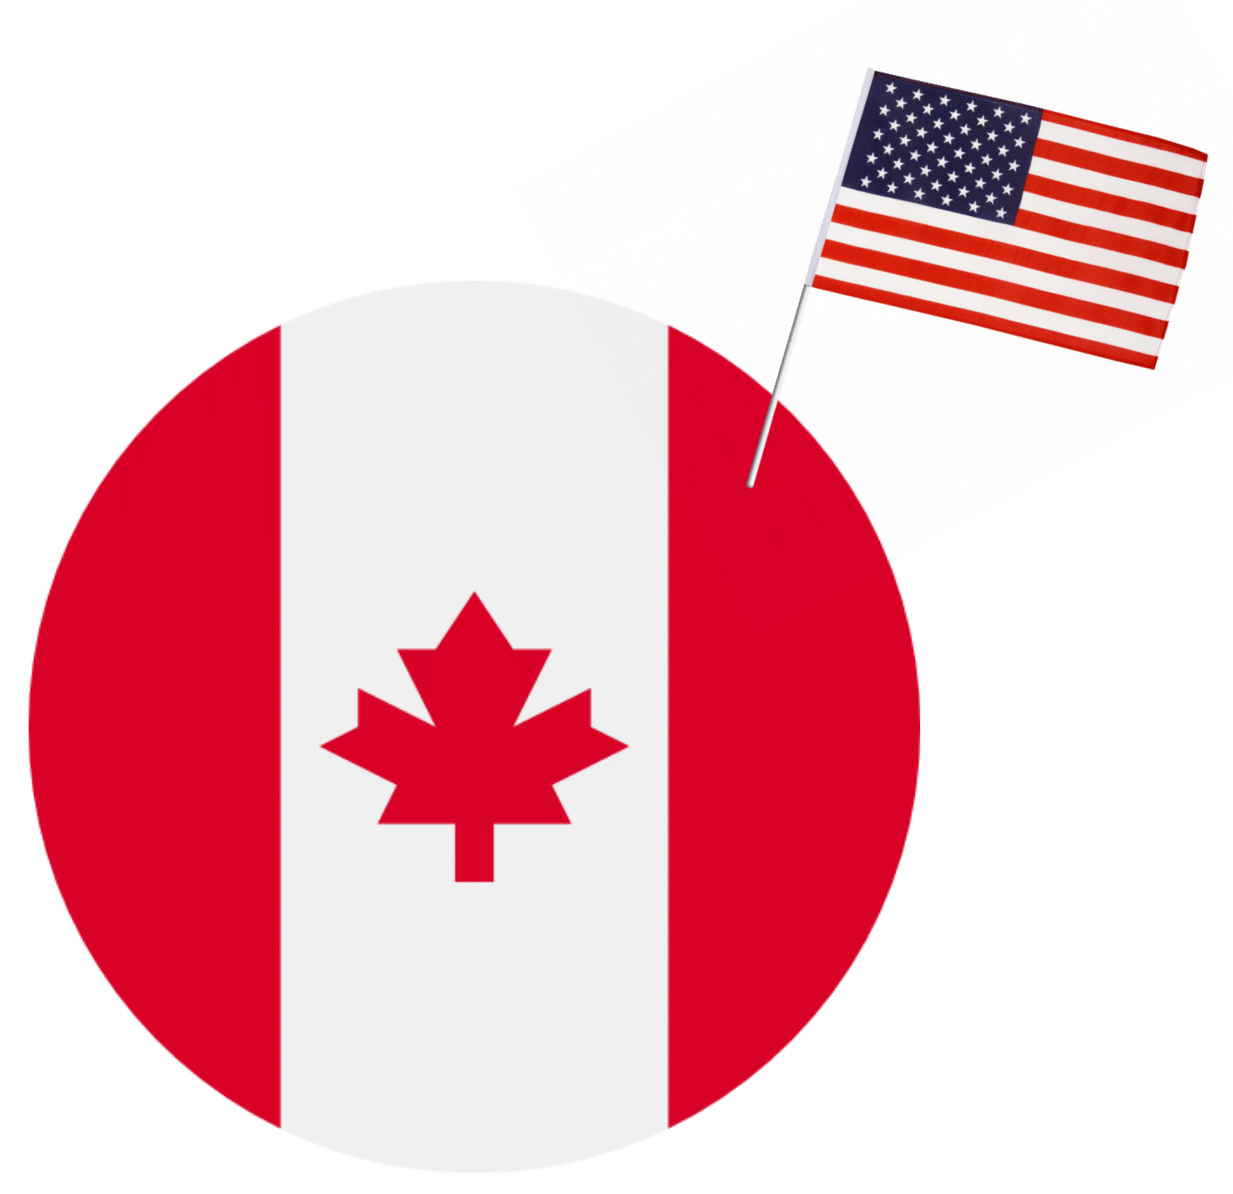 canadian-flag-educational-online-brain-games-6-and-up-autism-kids-learning-apps-for-children-and-toddler-on-tablets-ios-ipad-playstore-android-mobile-games-training-application